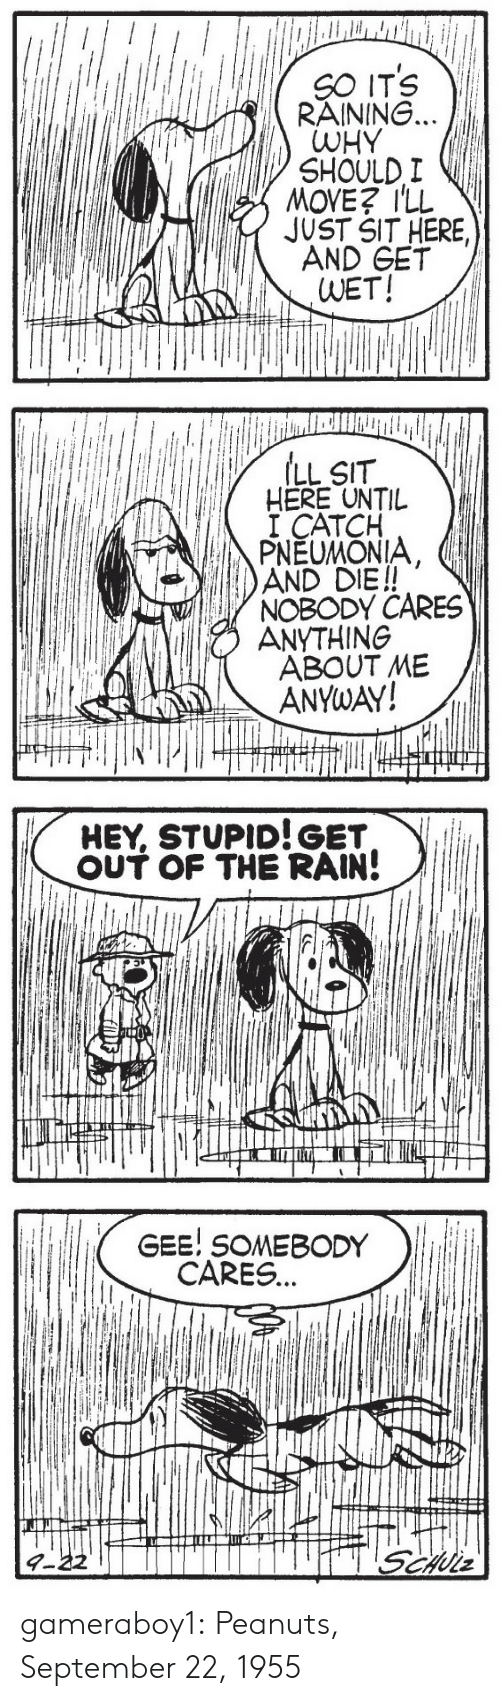 gee: SO ITS VI  RAINING.  WHY  SHOULD I  MOVE? ILL  JUST SIT HERE,  AND GET  WET!   ILL SIT  HERE UNTIL  I CATCH  PNEUMONIA  AND DIE!!  NOBODY CARES  ANYTHING  ABOUT ME  ANYwAY!   HEY, STUPID!GET  。UT OF THE RAIN!   GEE! SOMEBODY  CARES... gameraboy1:  Peanuts, September 22, 1955